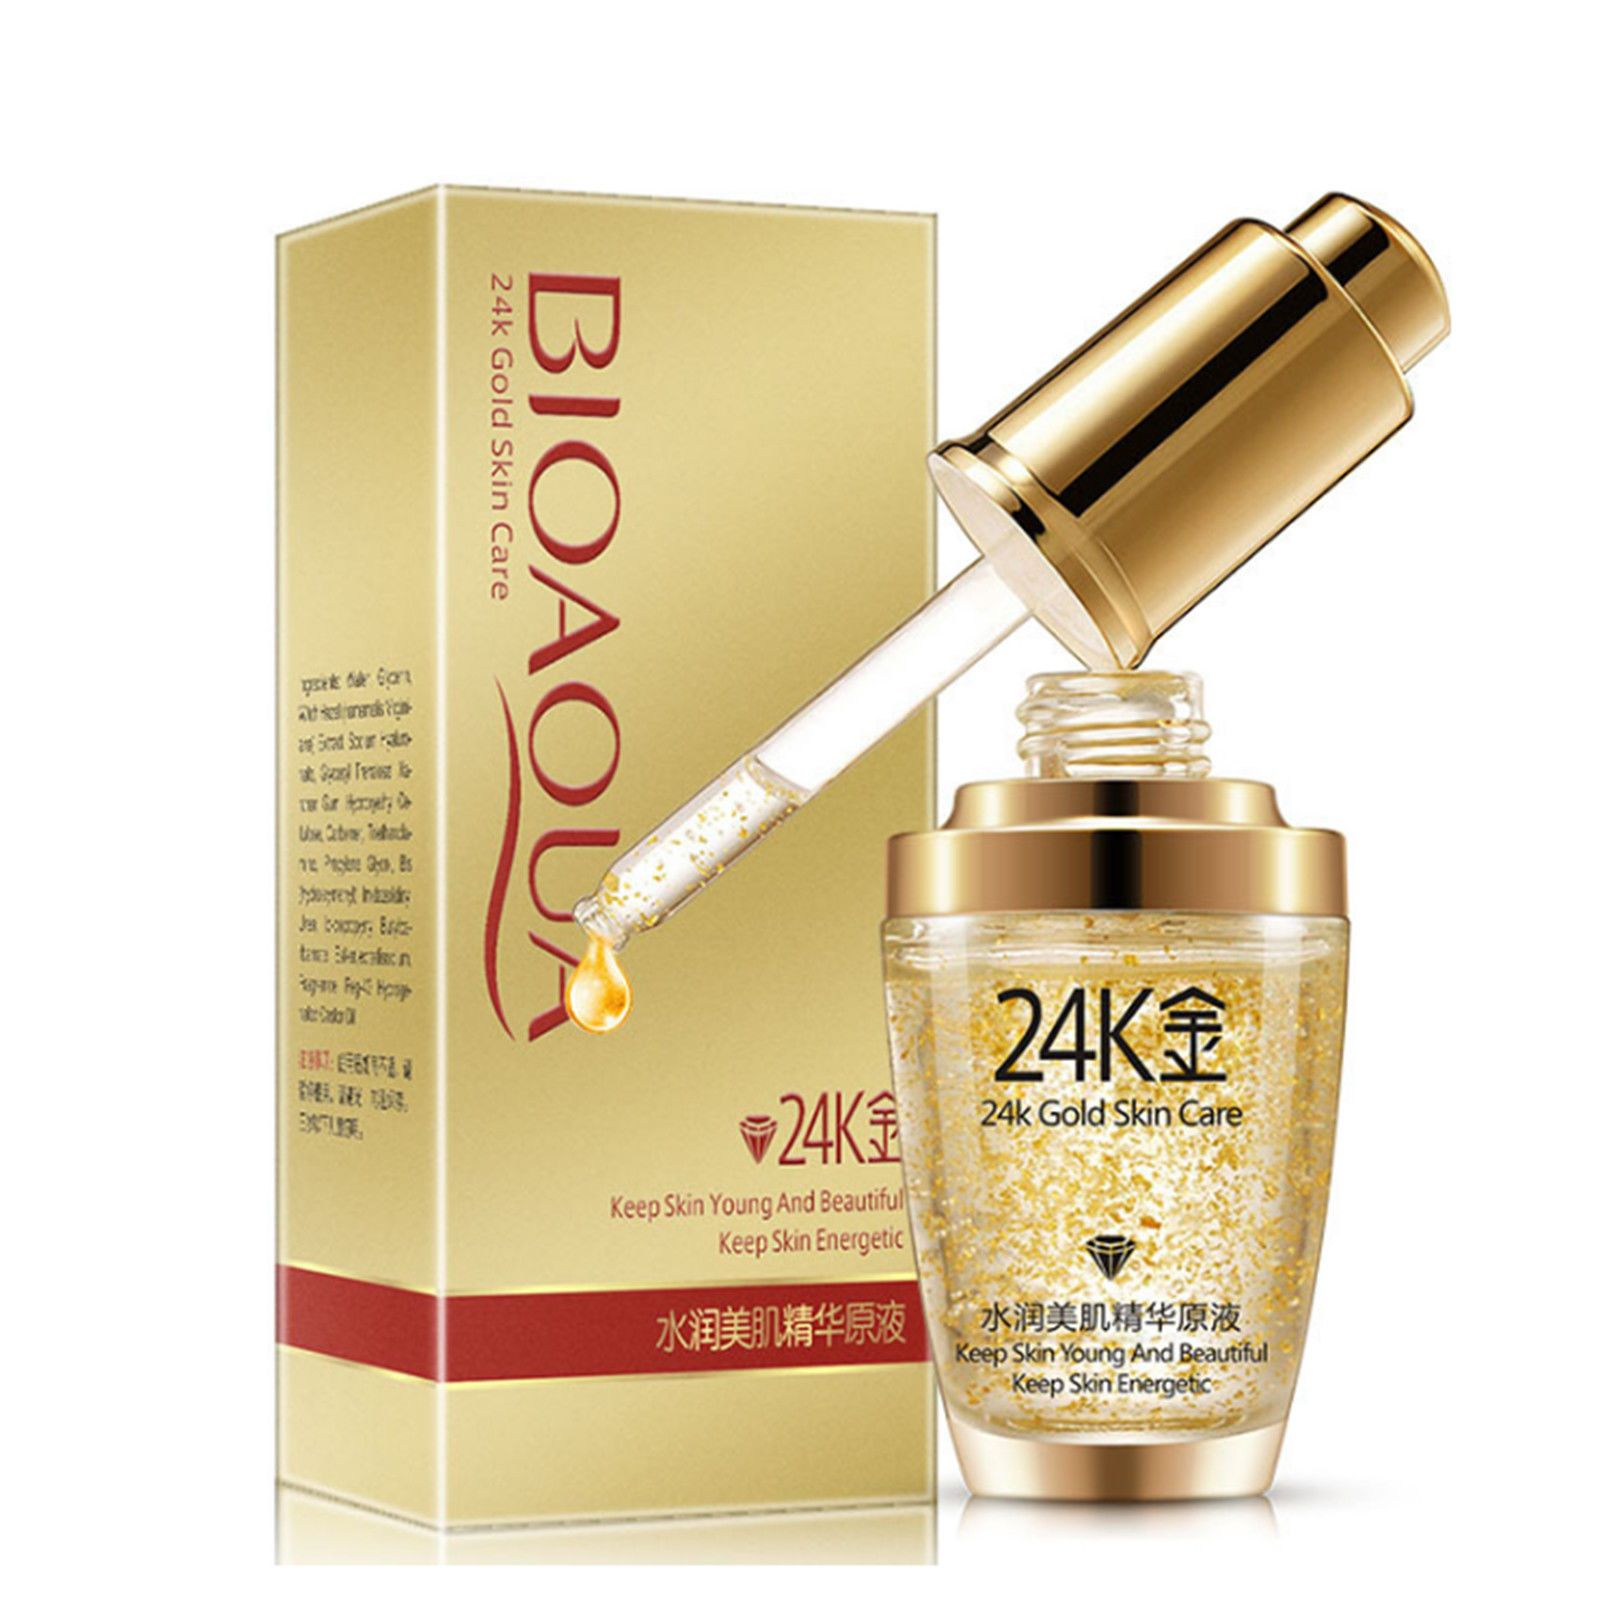 Bioaqua 24k Gold Skin Care Essence Collagen Anti Aging Nutritious Moisturizing Gold Skin Skin Care Moisturizer Oil Control Products